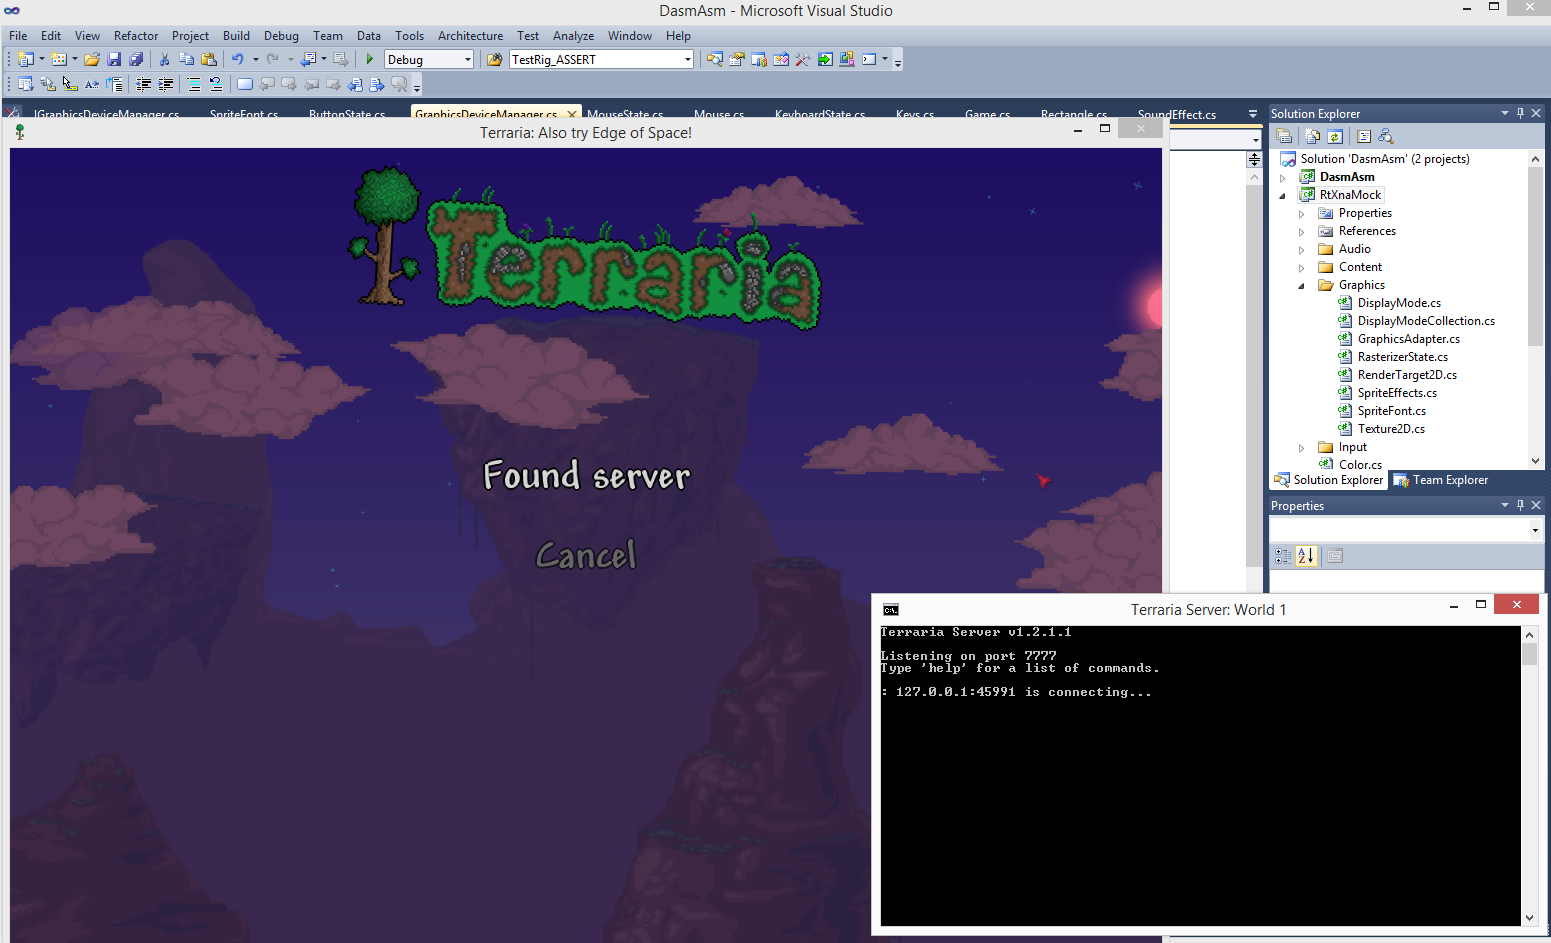 Rom's Rants: Coders: TerrariaServer without XNA?